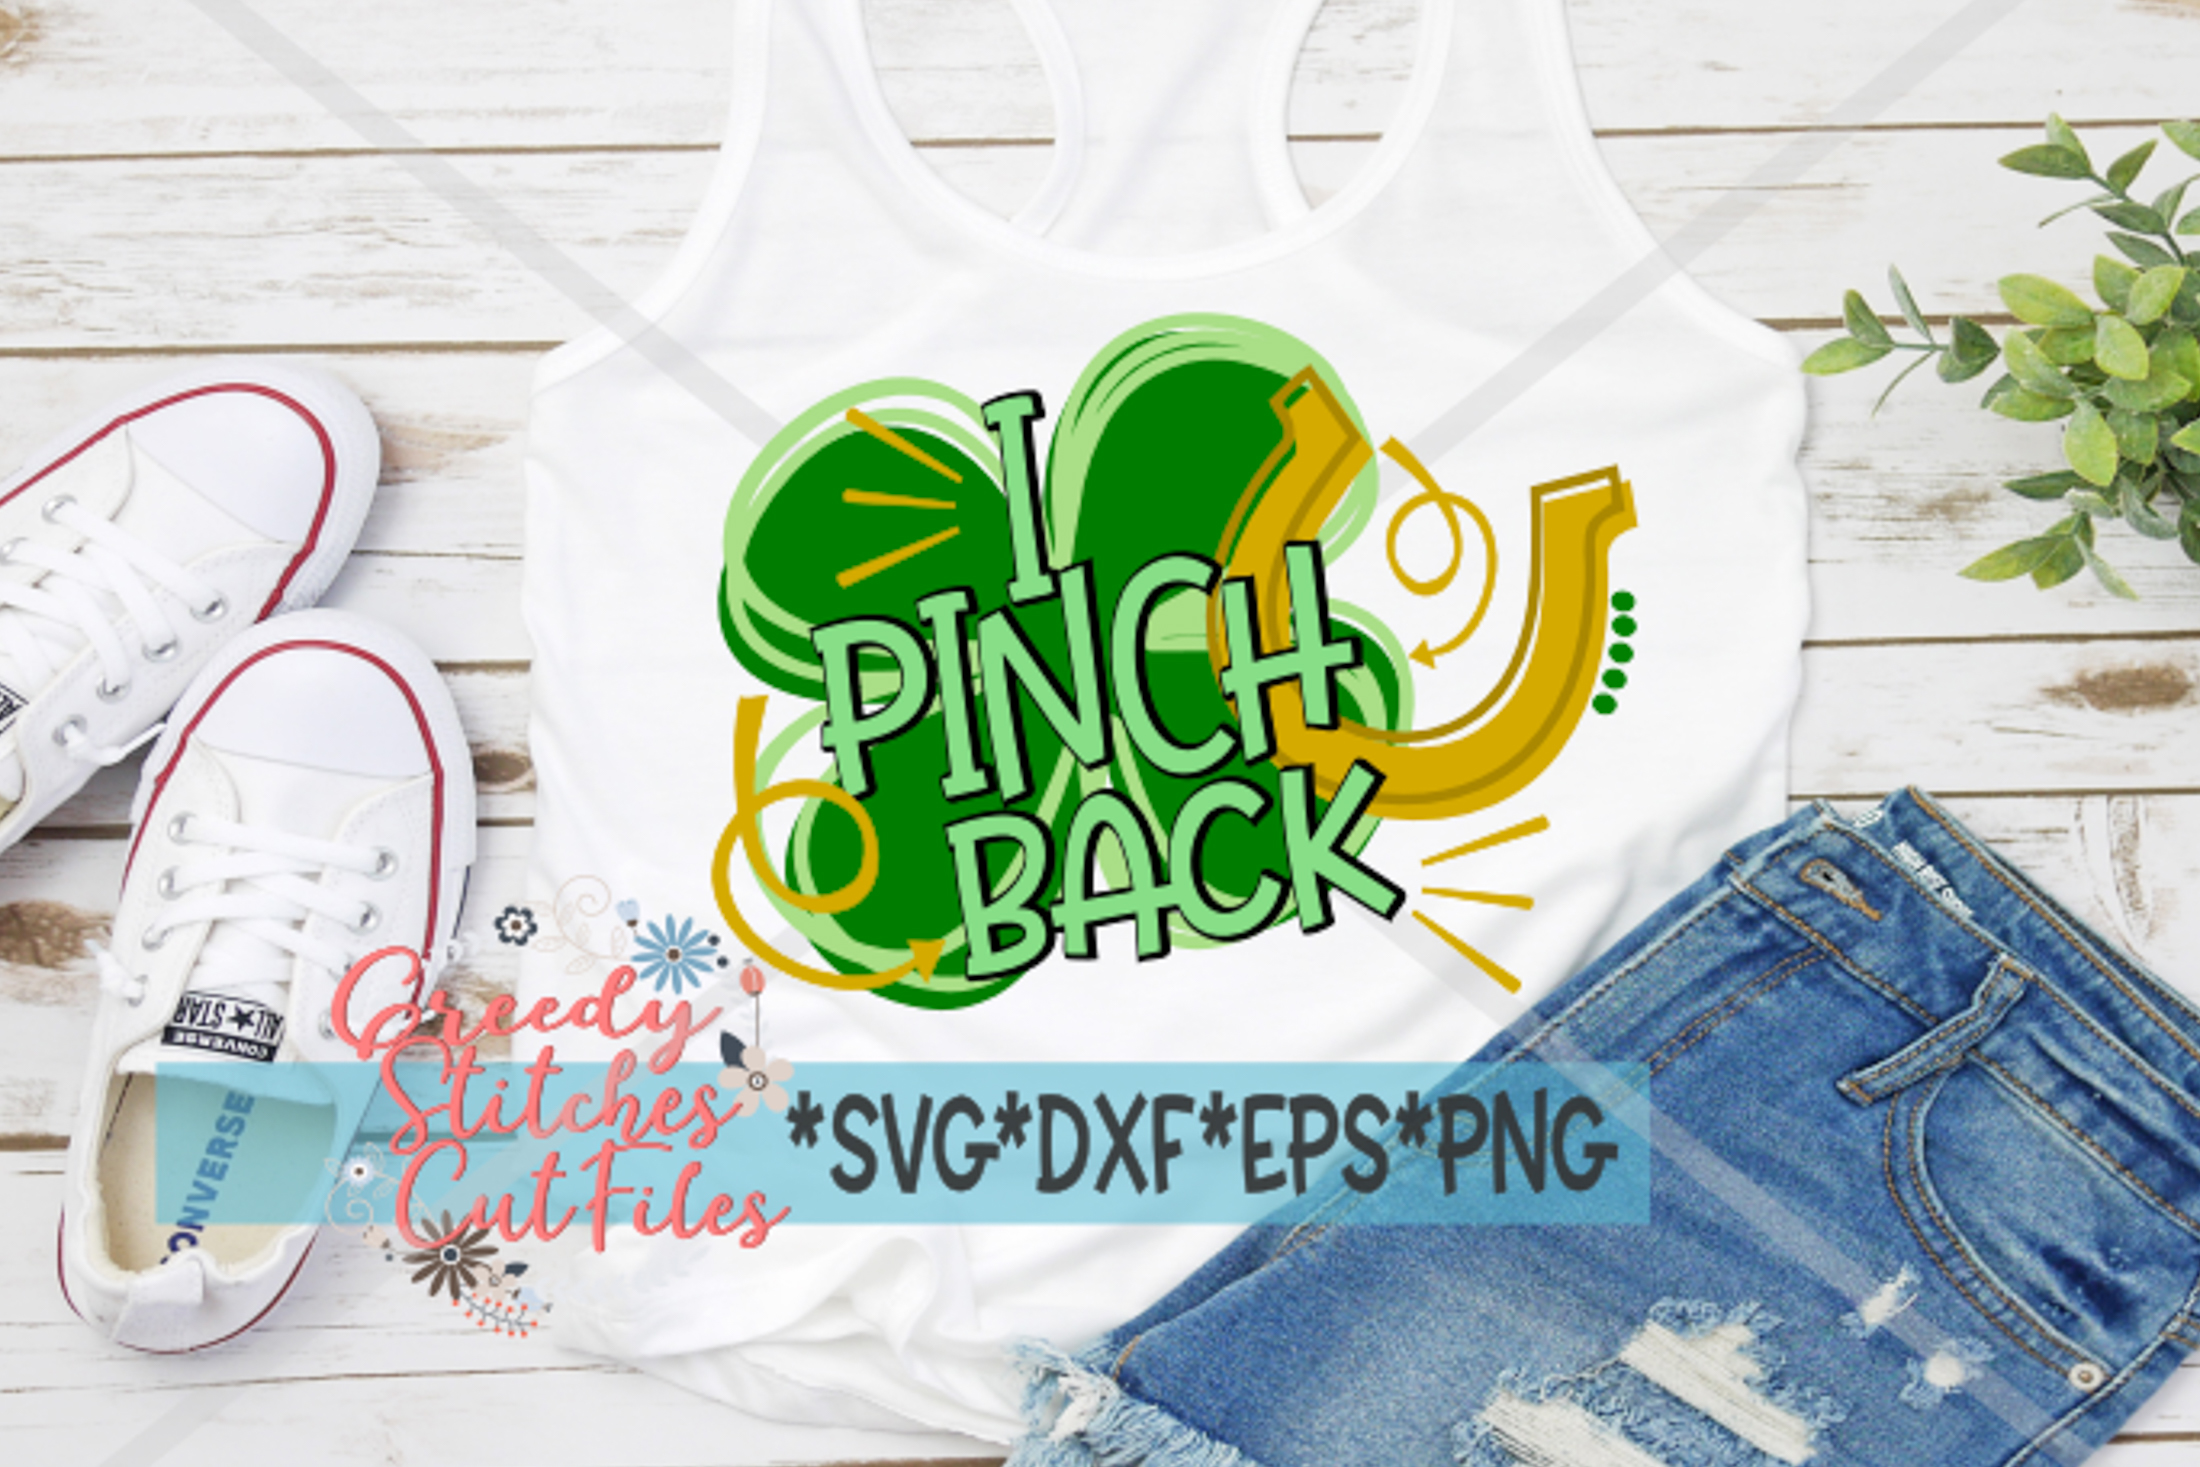 St. Patrick's Day | I Pinch Back SVG DXF EPS PNG example image 4